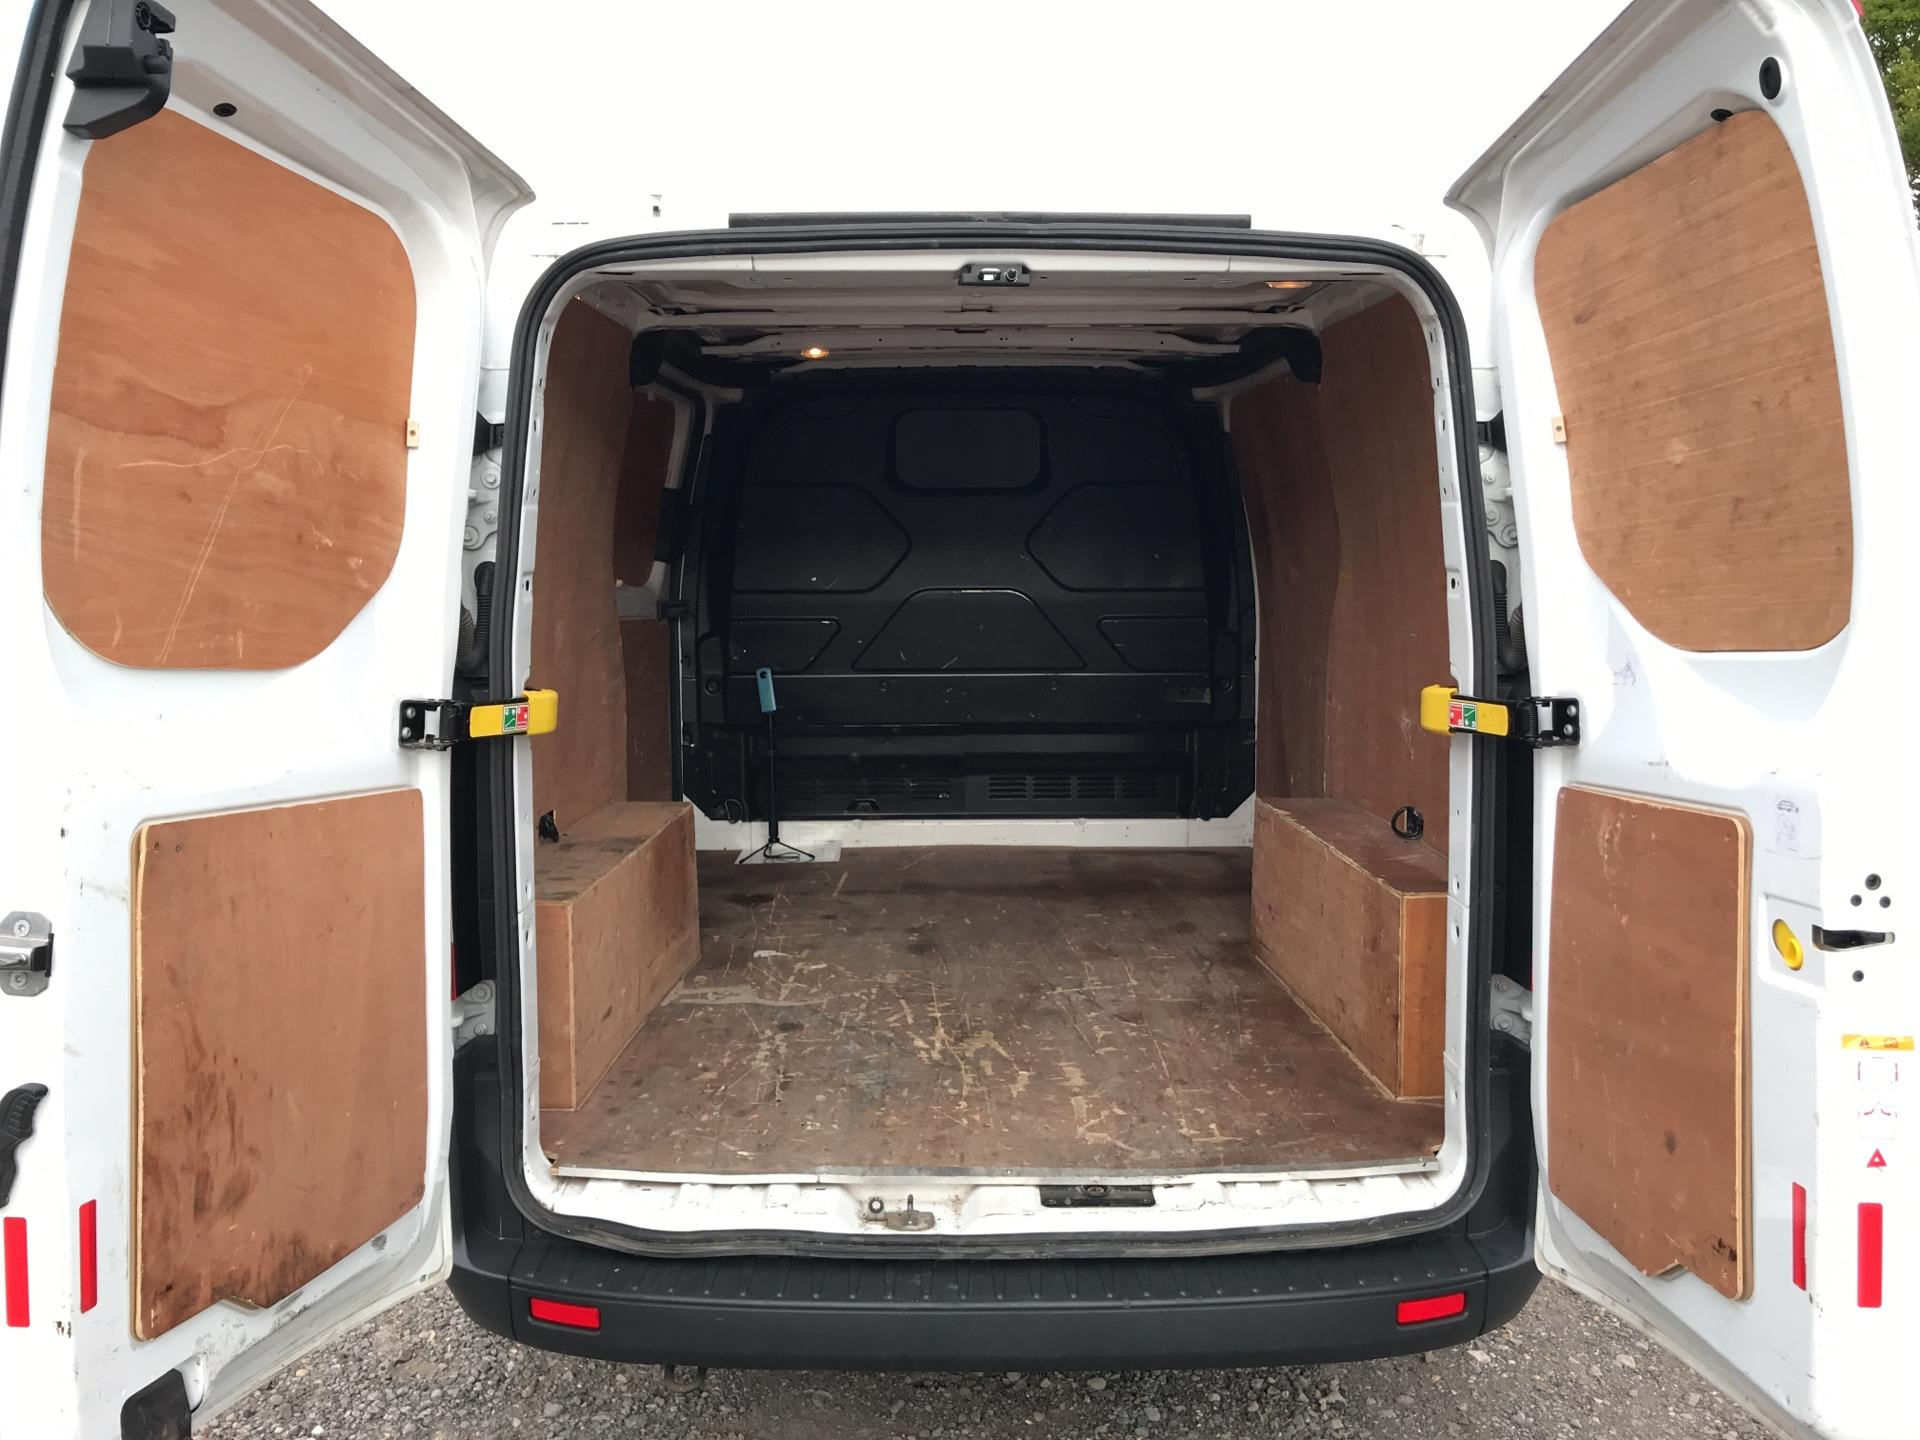 2016 Ford Transit Custom 290 L1 DIESEL FWD 2.2 TDCI 100PS LOW ROOF VAN EURO 5 (FA16UOE) Thumbnail 16